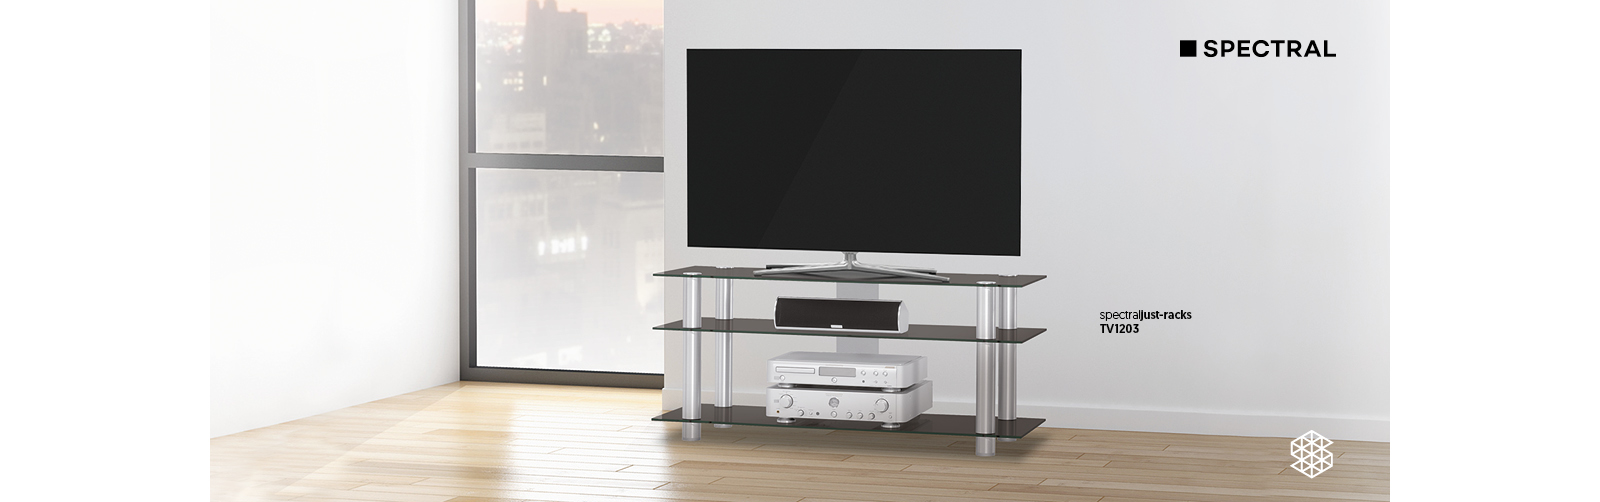 Spectral just-racks TV1203